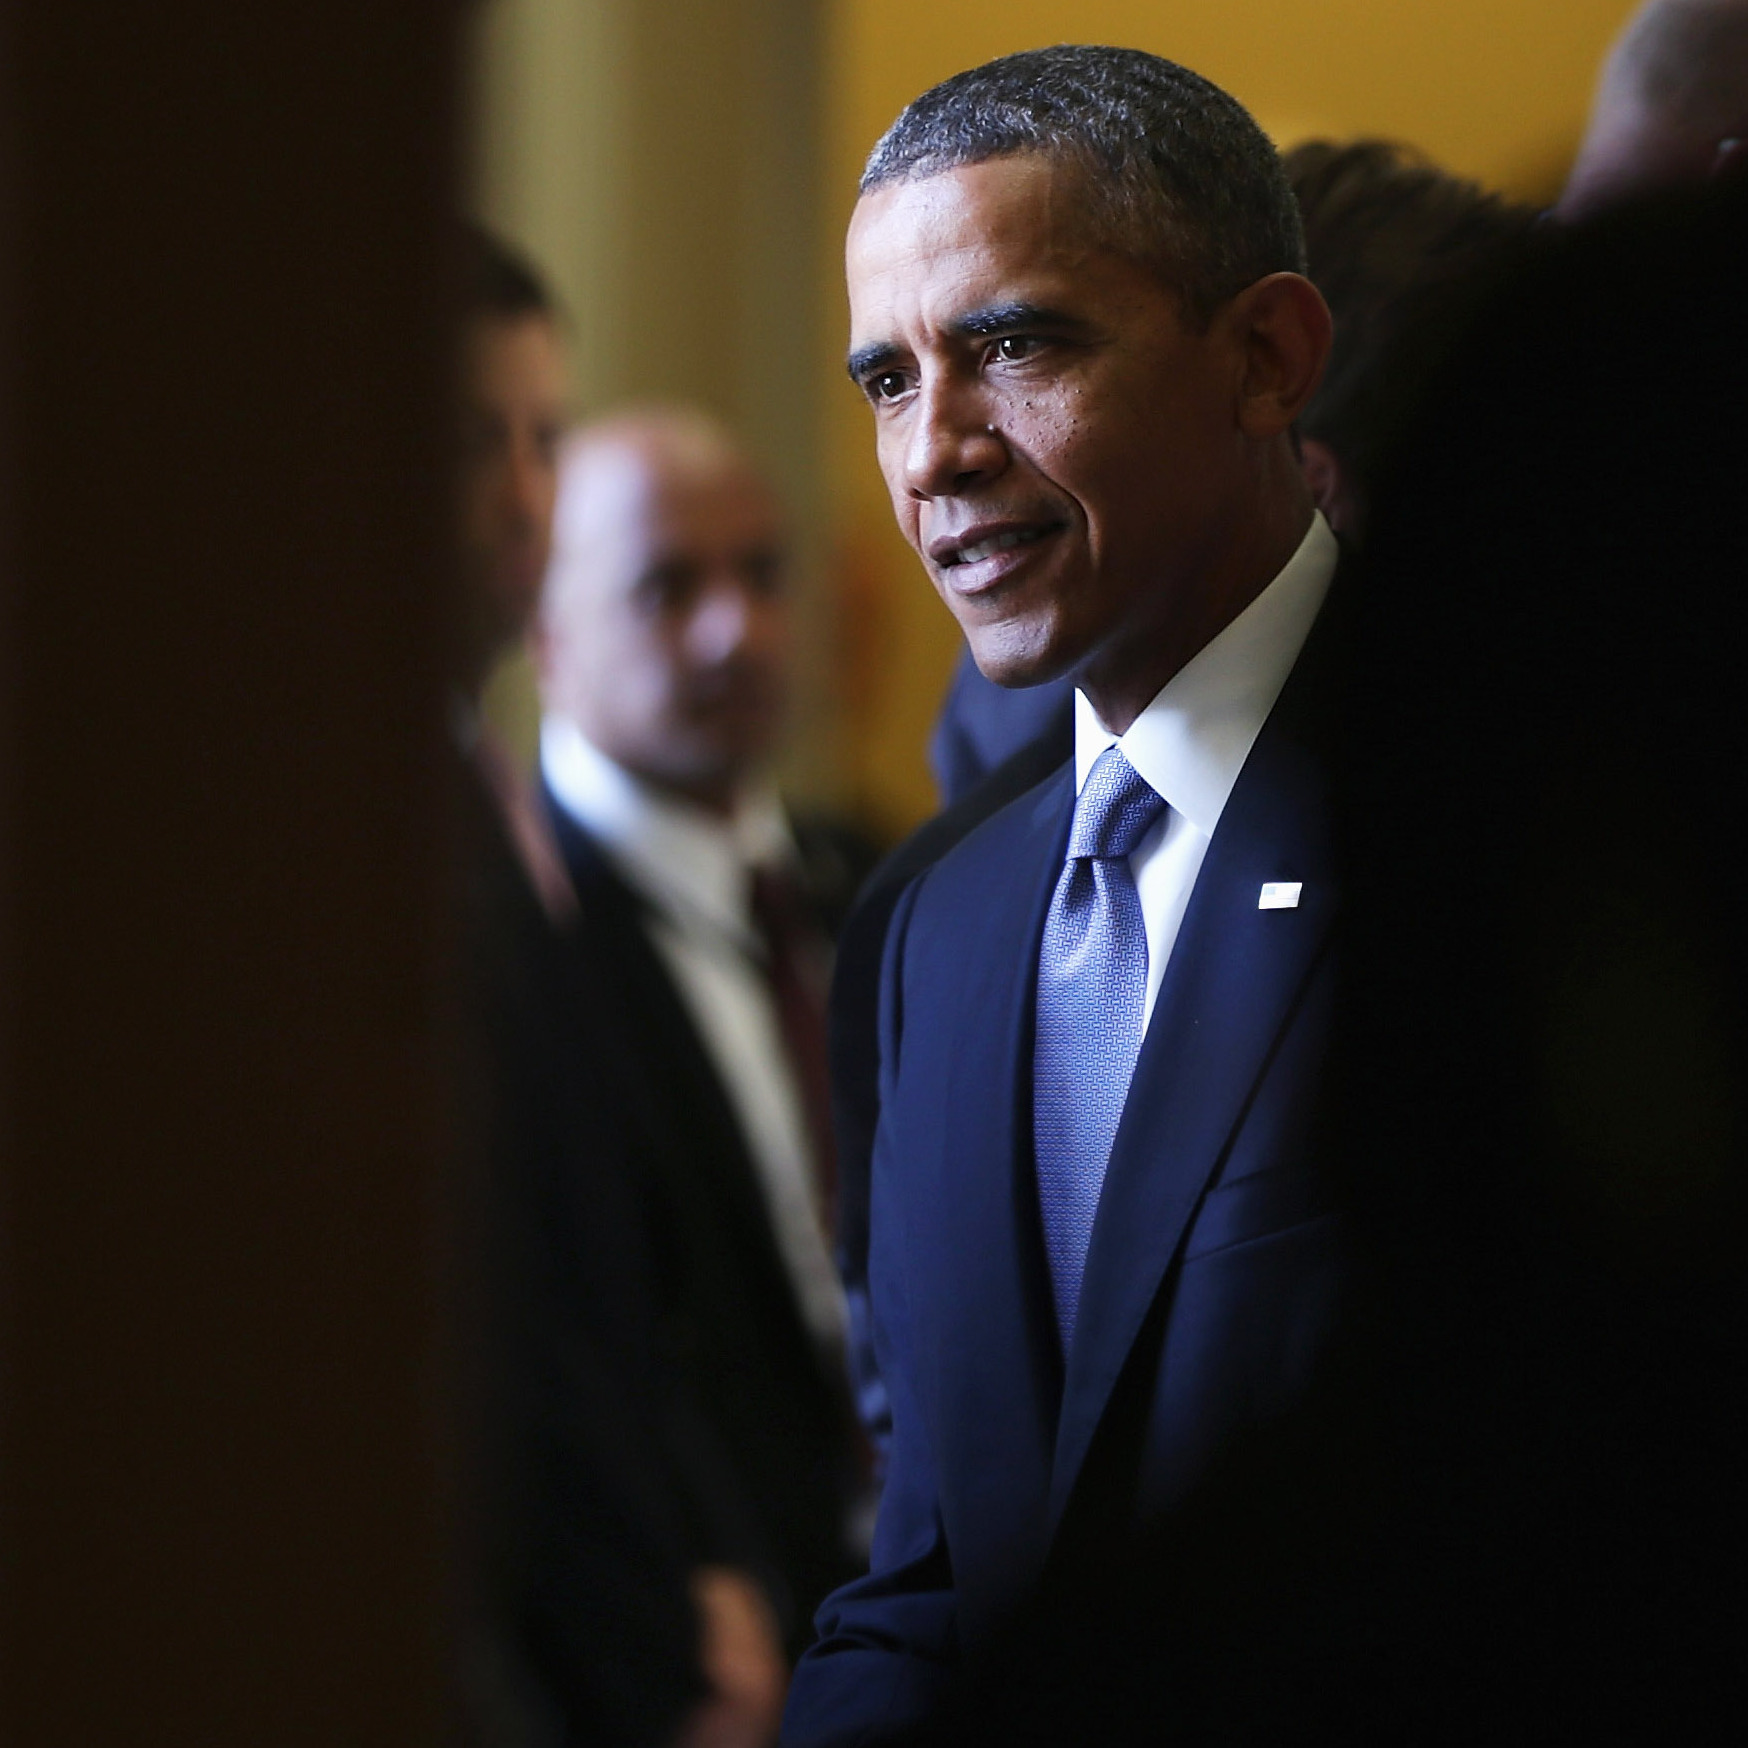 President Obama talks to Senate pages as he leaves the Senate Democratic policy luncheon after meeting with Senate Democrats at the Capitol on Tuesday.